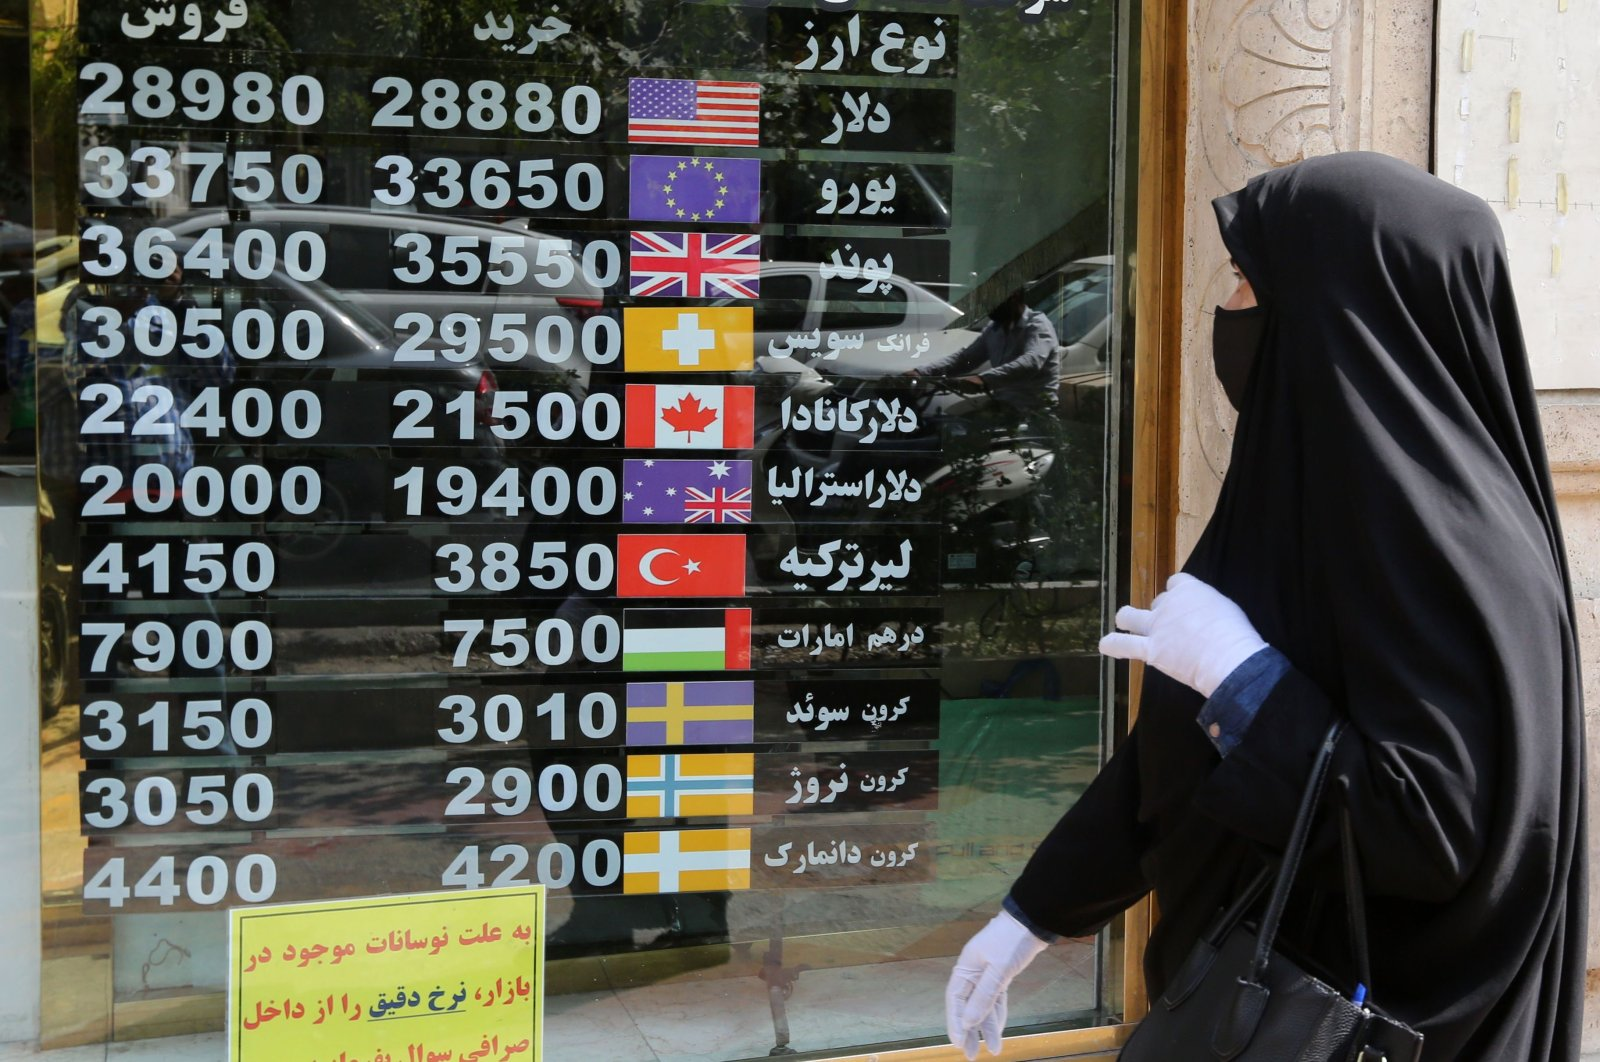 A woman checks a display board at a currency exchange shop as she walks by in the capital Tehran, Iran, Sept. 29, 2020. (AFP Photo)